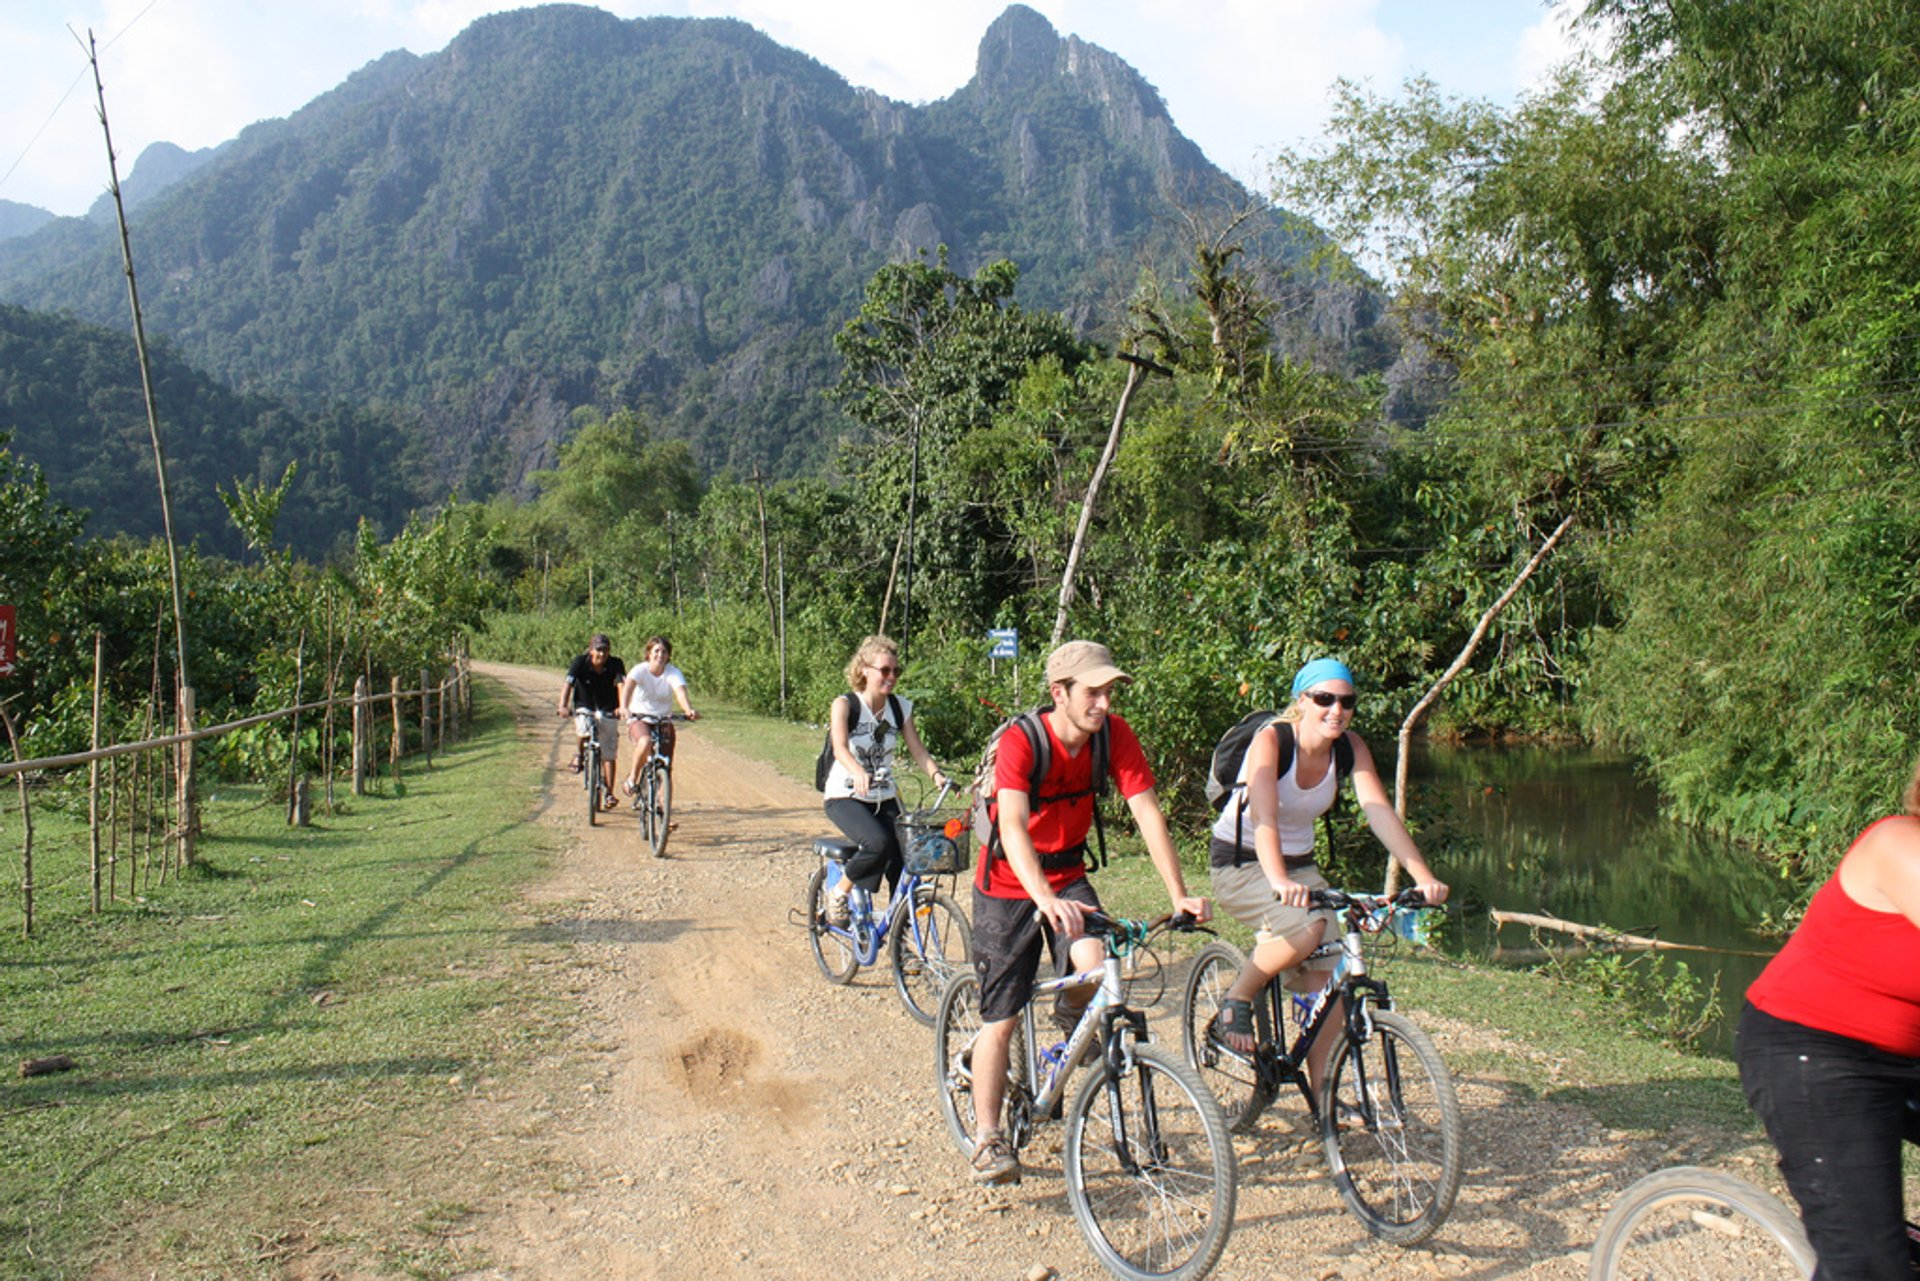 The Tour de Laos sets off on its afternoon stage back to Vang Vieng 2020